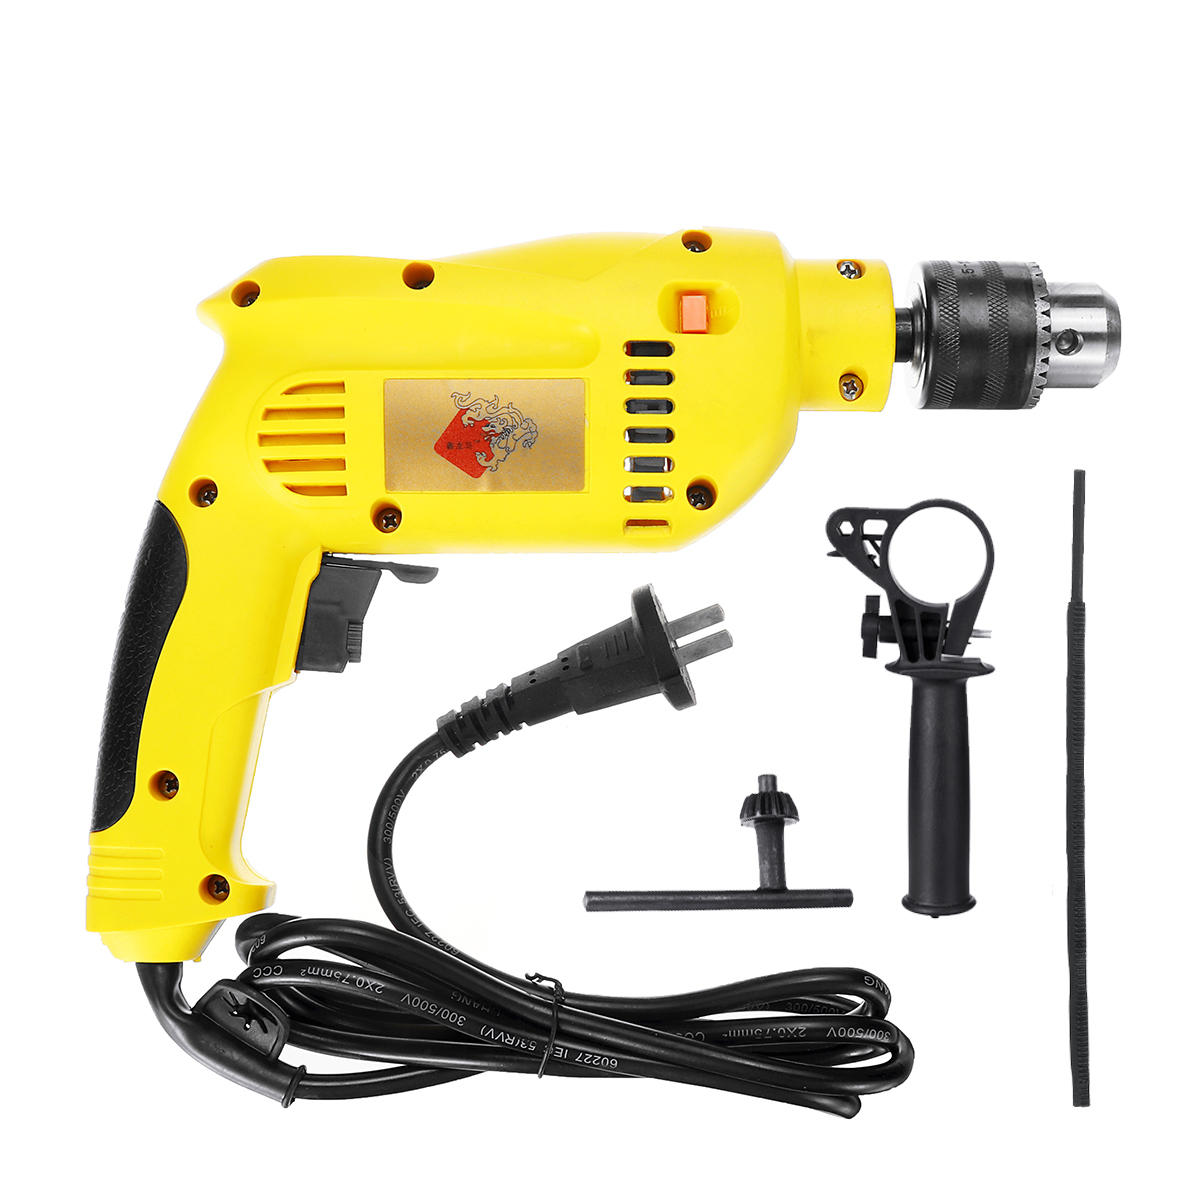 1880W 3800rpm Electric Impact Drill Wrench 13mm Chuck Brushless Motor Power Tools